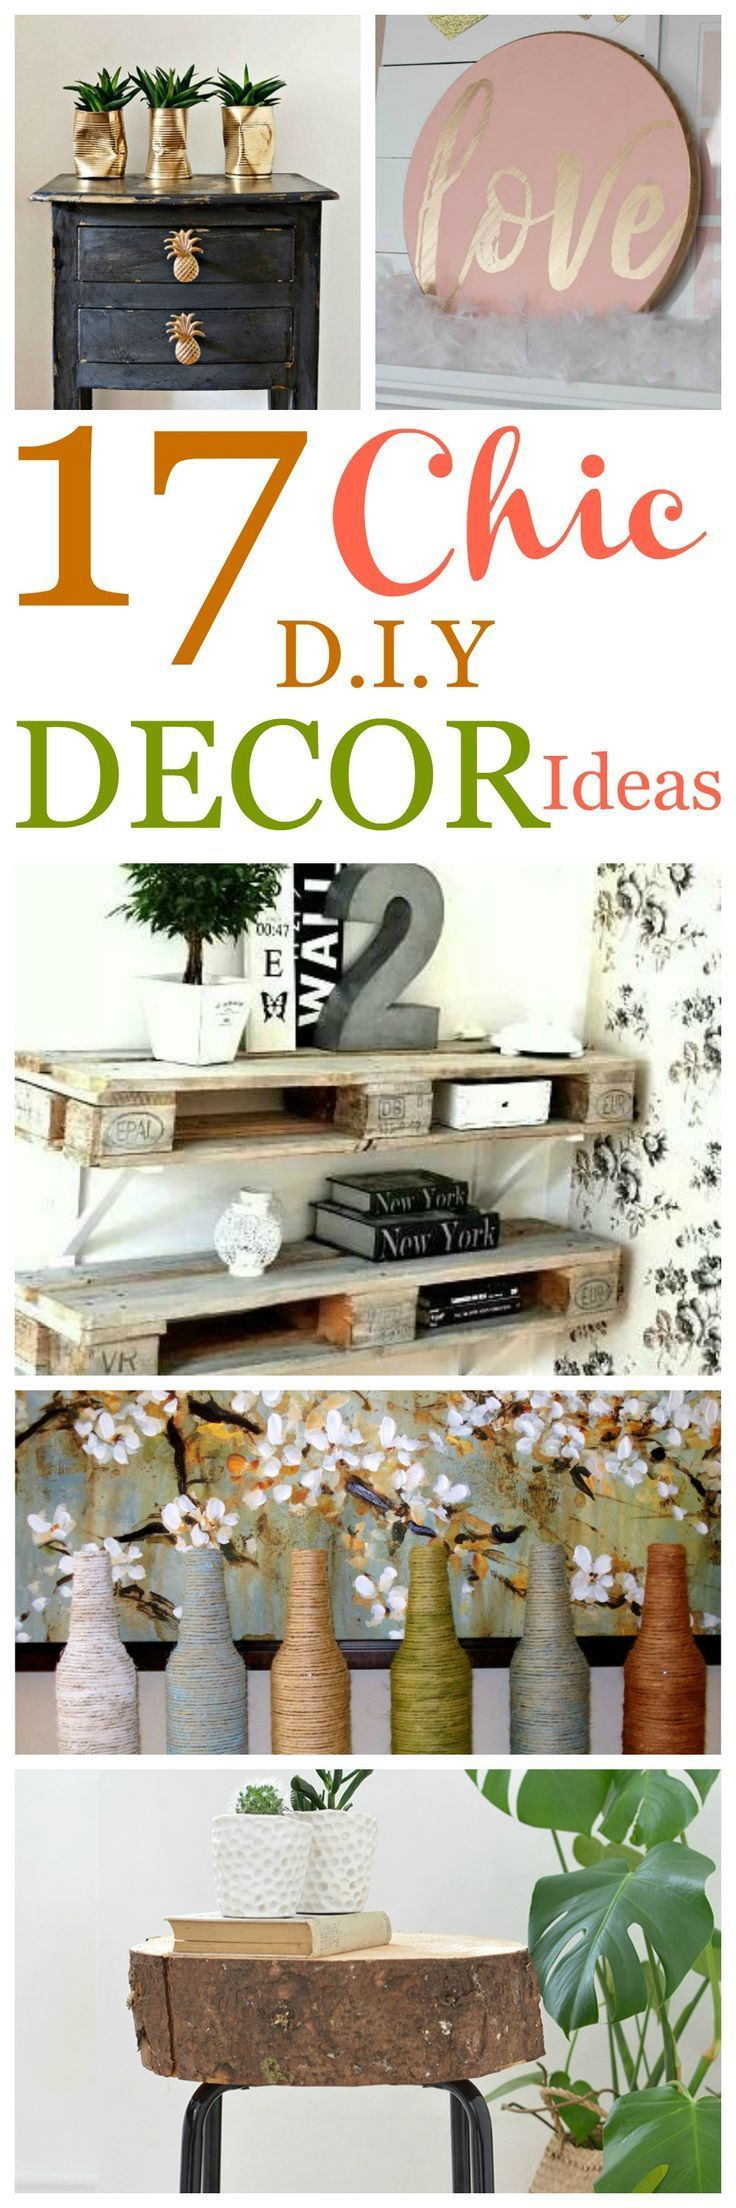 Living Room Decor Trends 2018: 17 DIY Home Crafty Decor Ideas